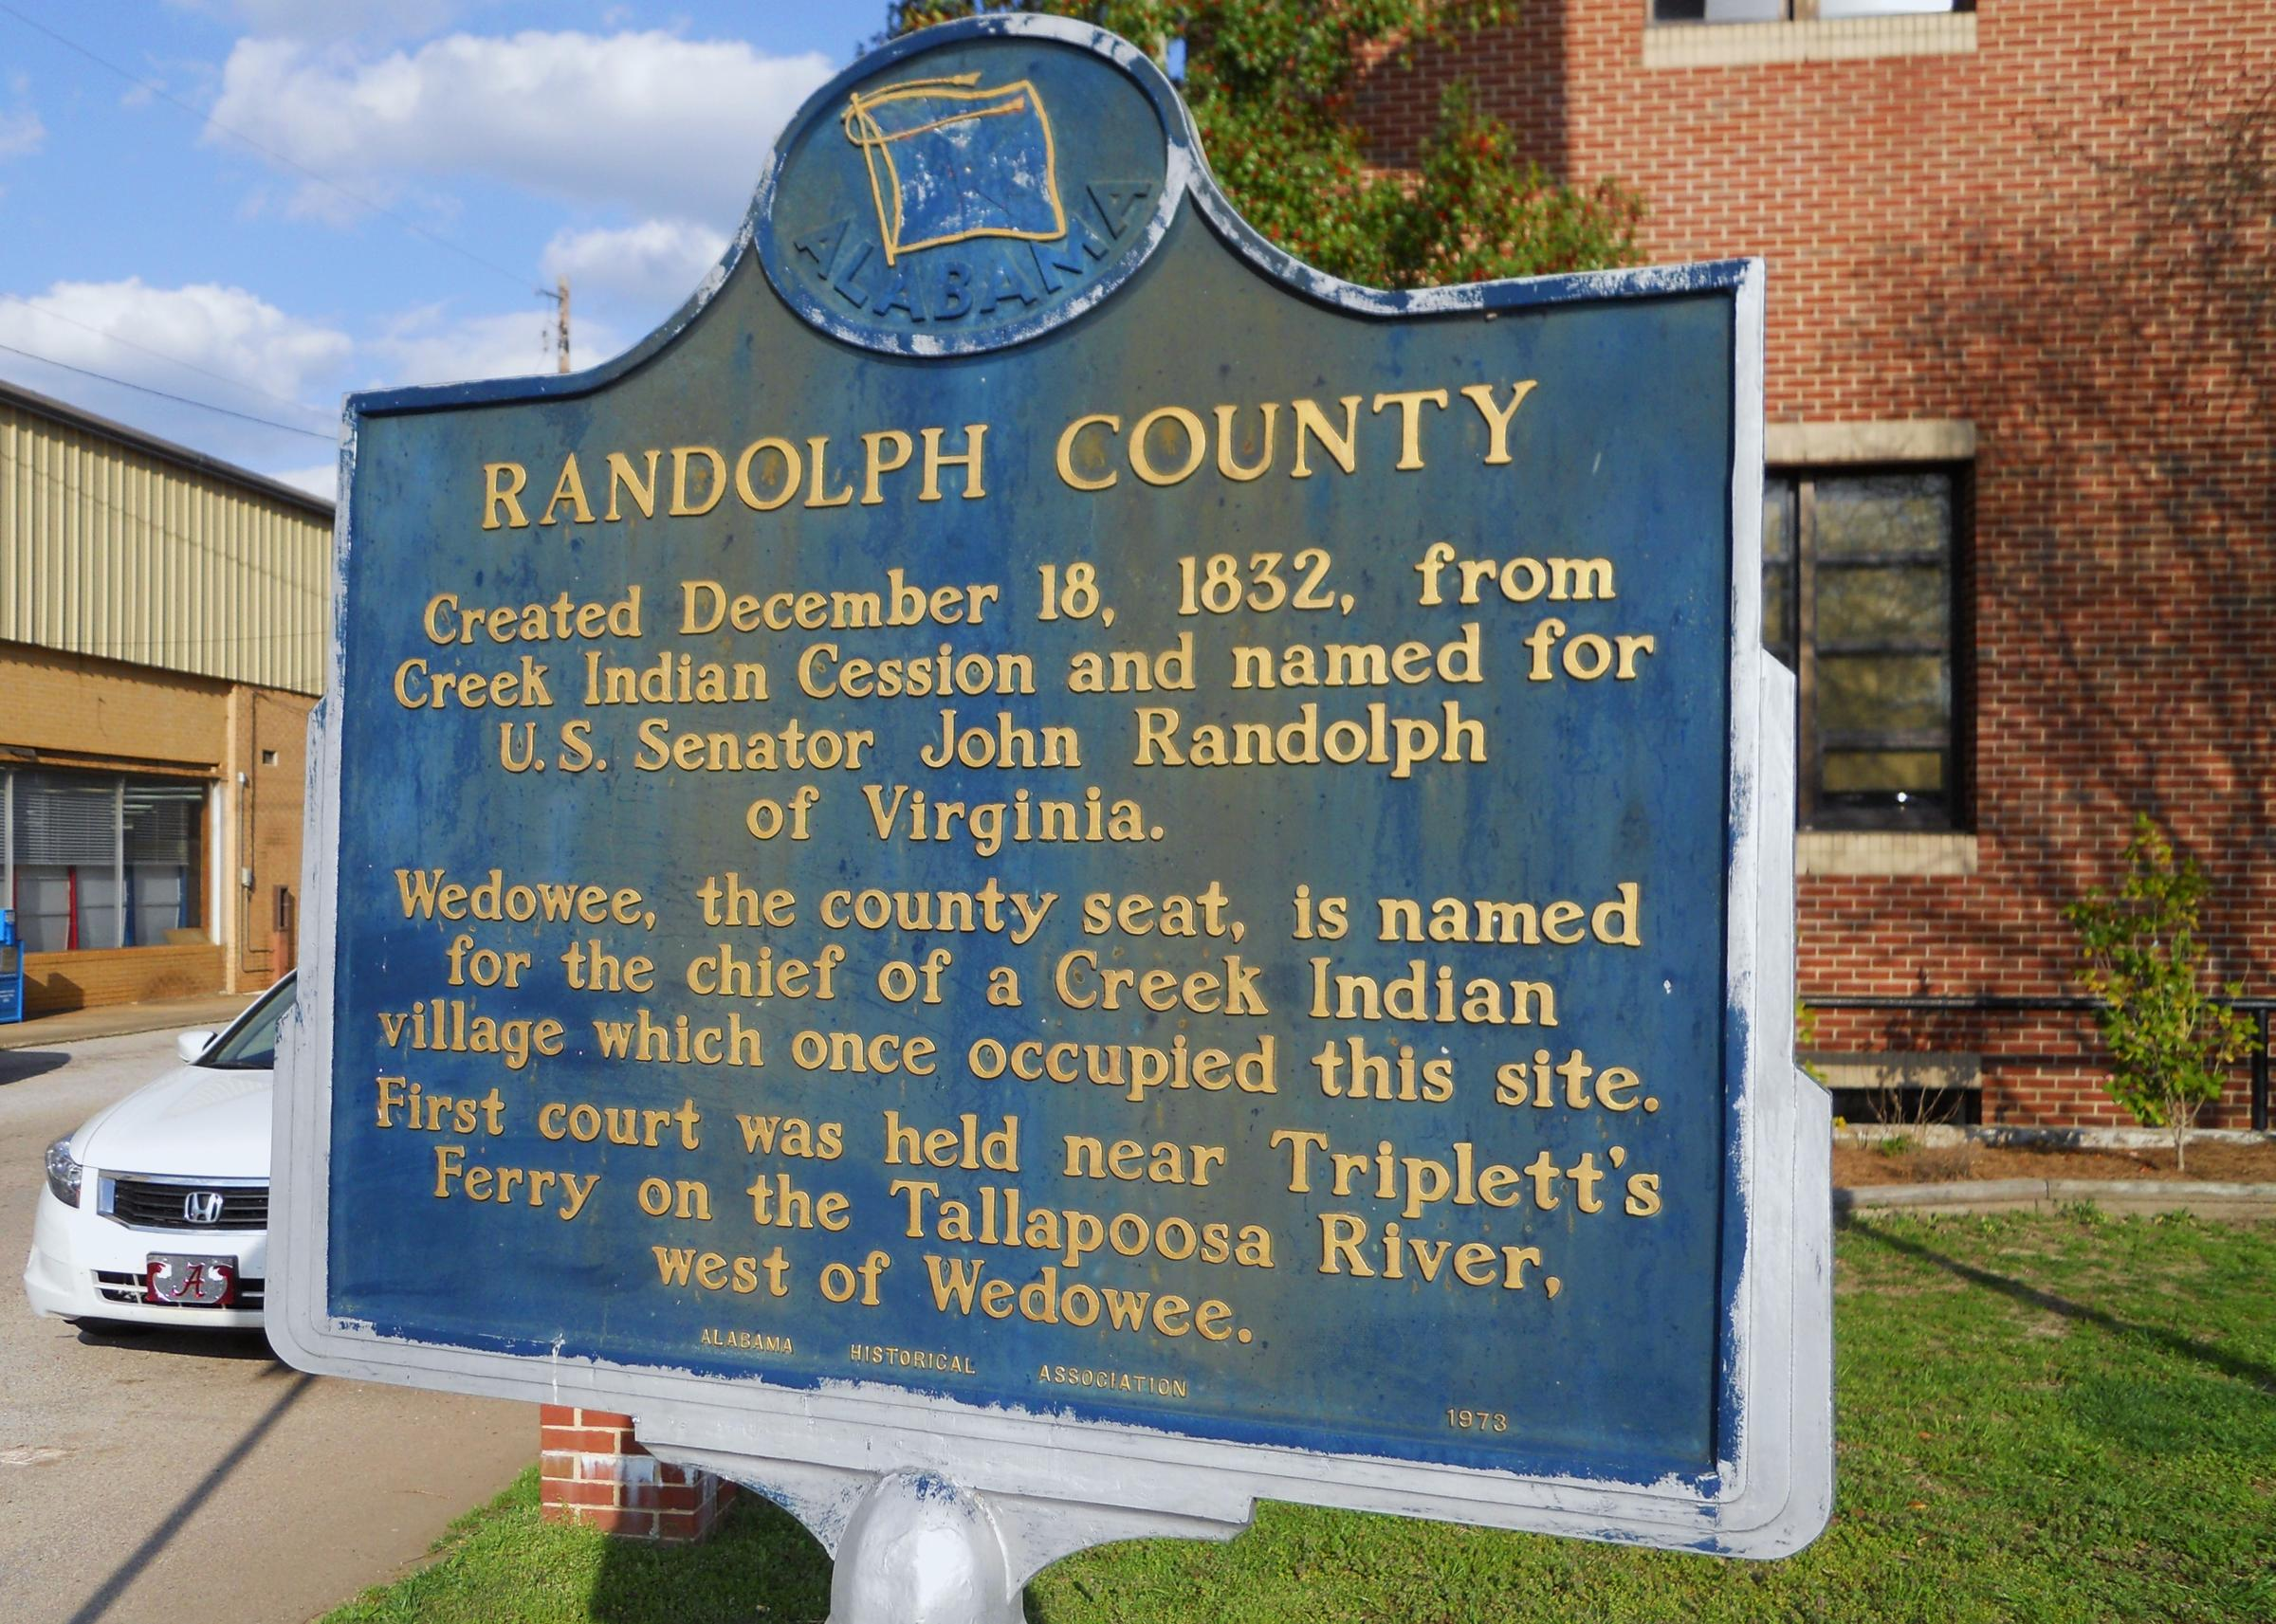 Randolph County Officials Sued for Violating Constitutional Rights